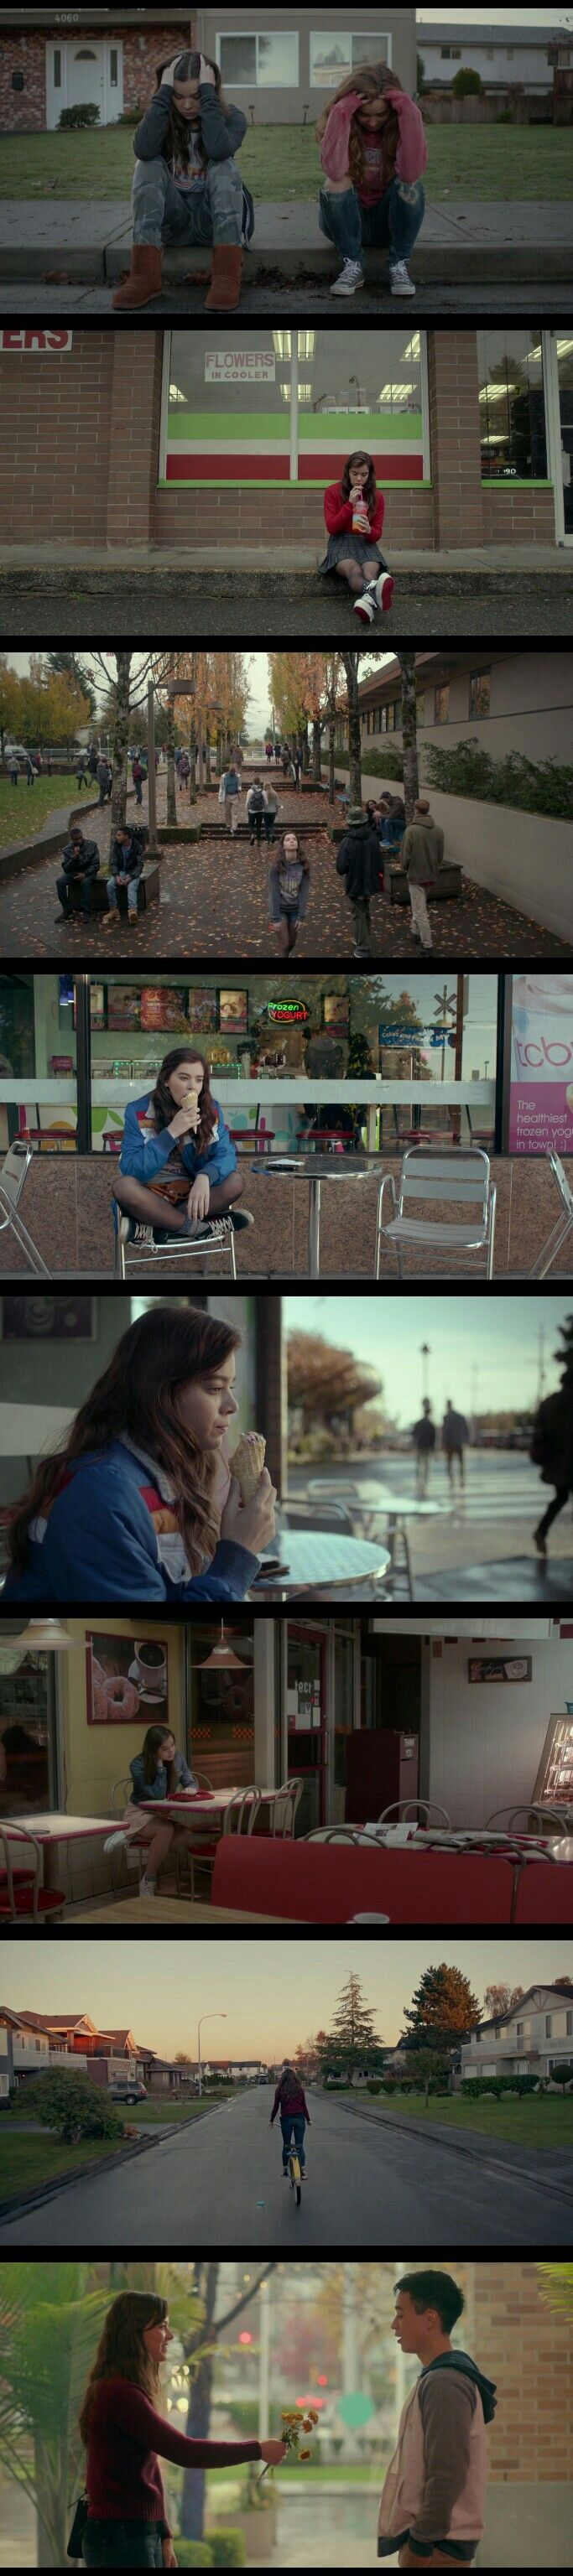 Hailee Steinfeld in The Edge of Seventeen as Seventeen years old high school girl Nadine Franklin.